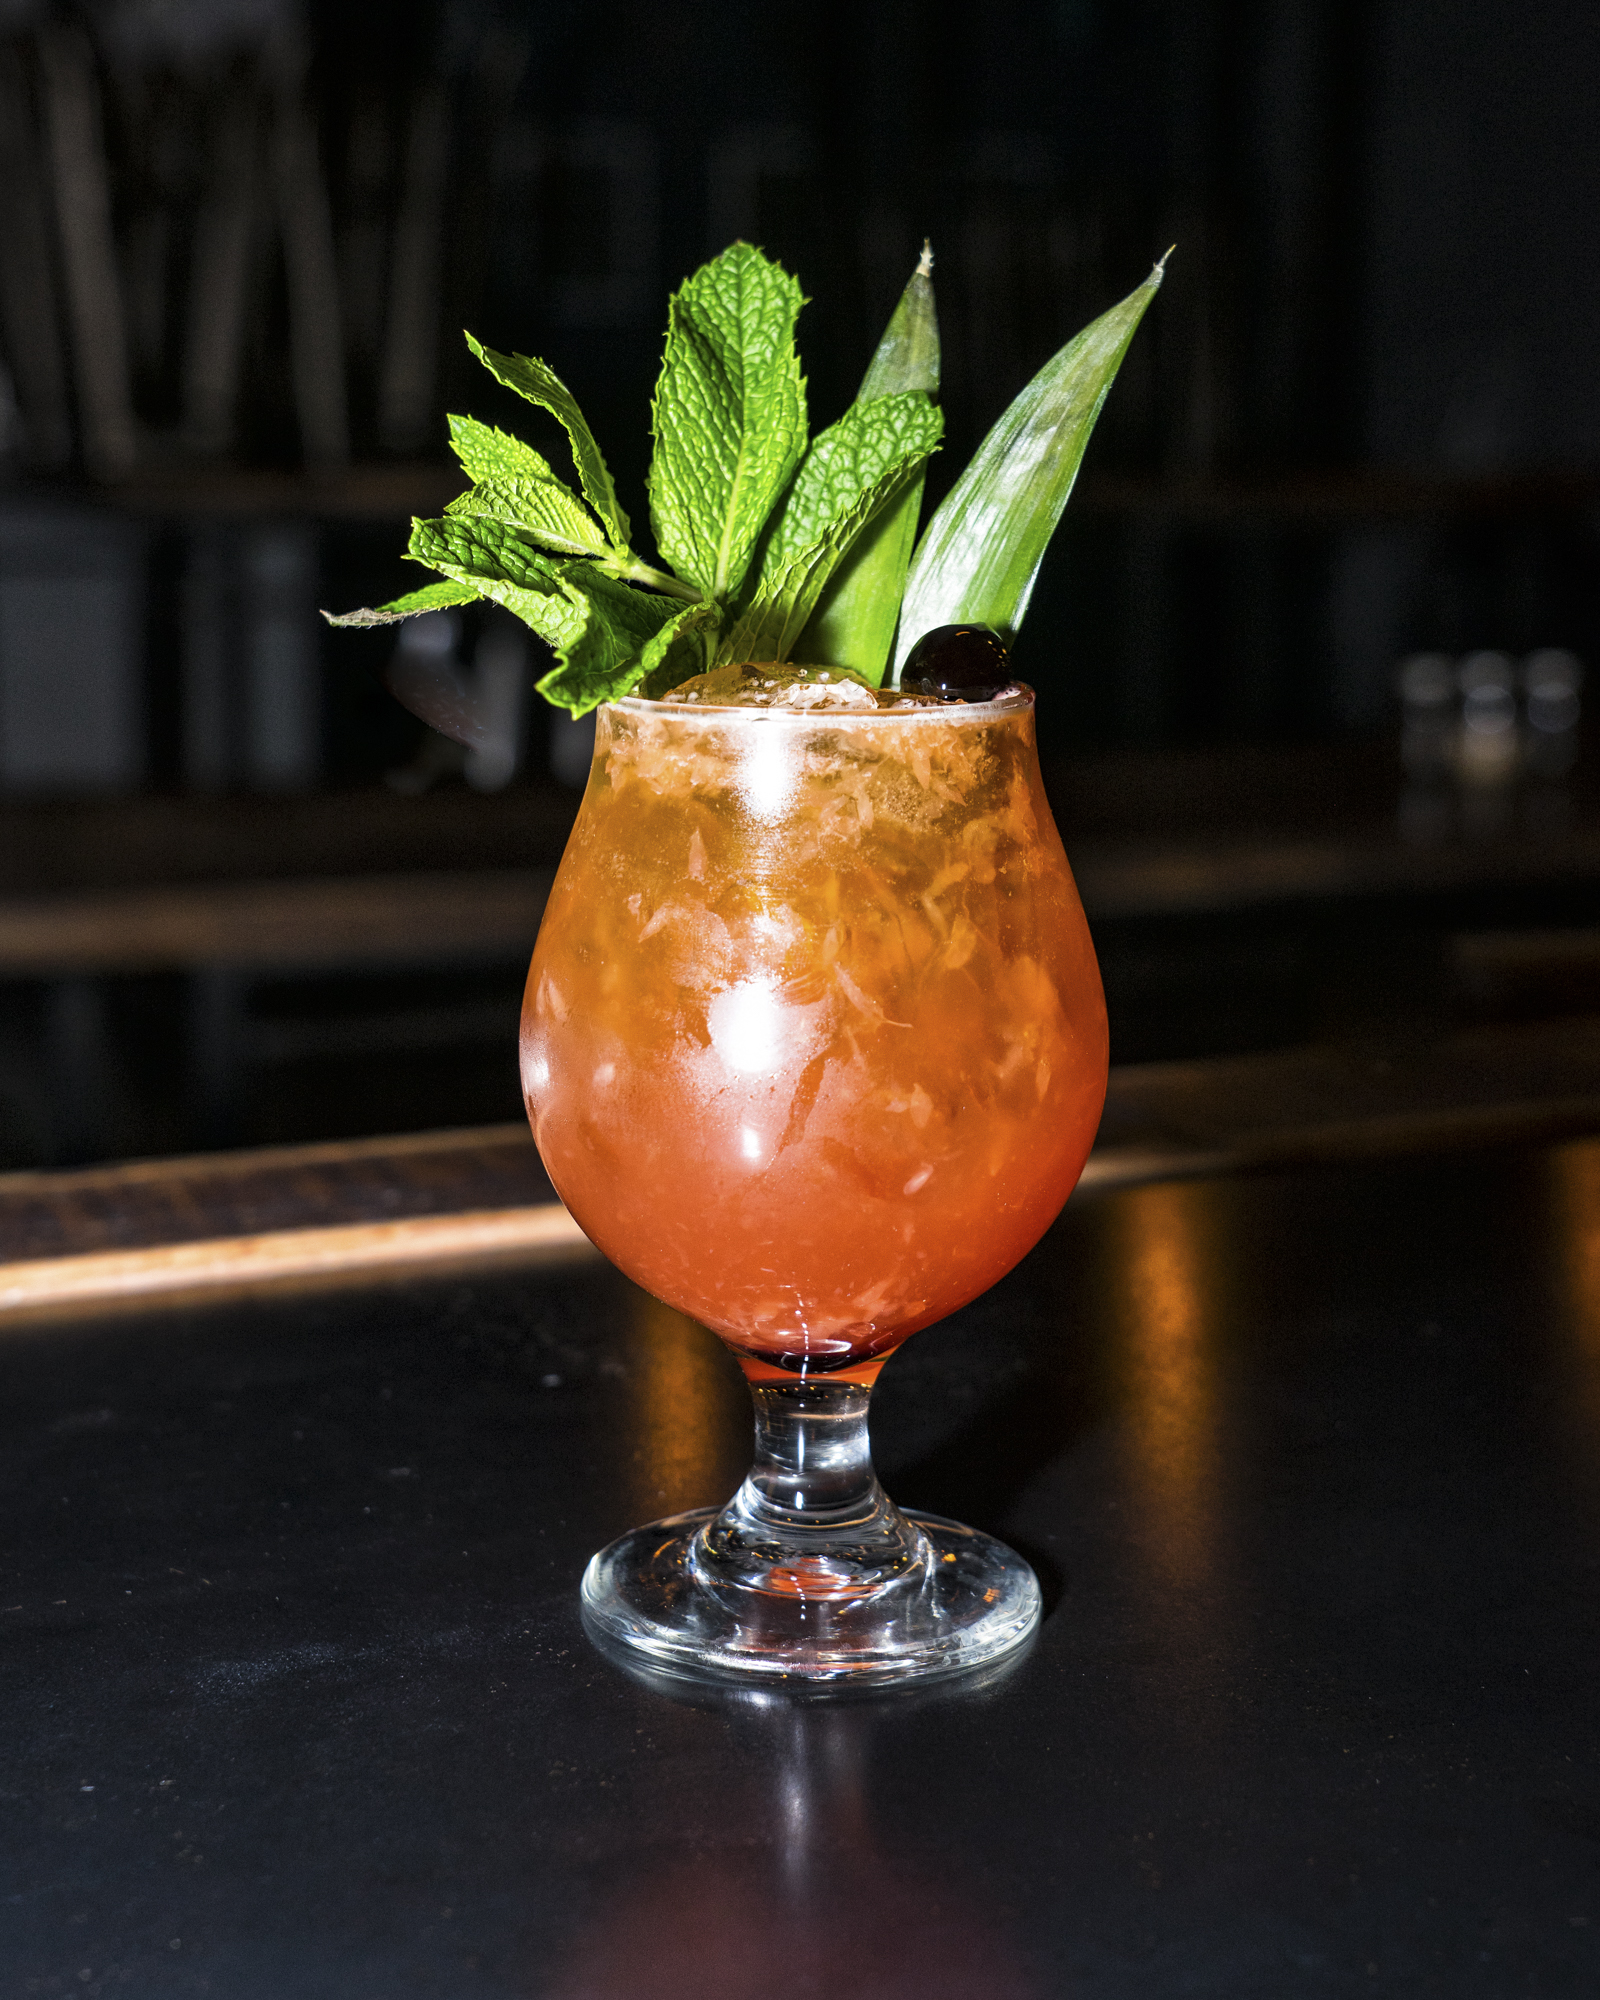 Tikisaurus Beer Cocktail - -½ oz of Agave-½ oz of Lime Juice-½ oz of Grapefruit Juice-¾ oz of Hibiscus Falernum-1 ½ oz of Aquavit-½ oz of Plantation Pineapple Rum-Splash of Opposable IPA1. Build your cocktail out in a shaker except for Opposable IPA2. Give it all a light shake3. Sugar the rim of your serving glass4. Pour contents of your shaker into your serving glass5. Top cocktail with a splash of Opposable IPA6. Garnish with whatever you'd like (we like a Pineapple Stave and a sprig of Mint)7. Serve and sip this delicious beer cocktail